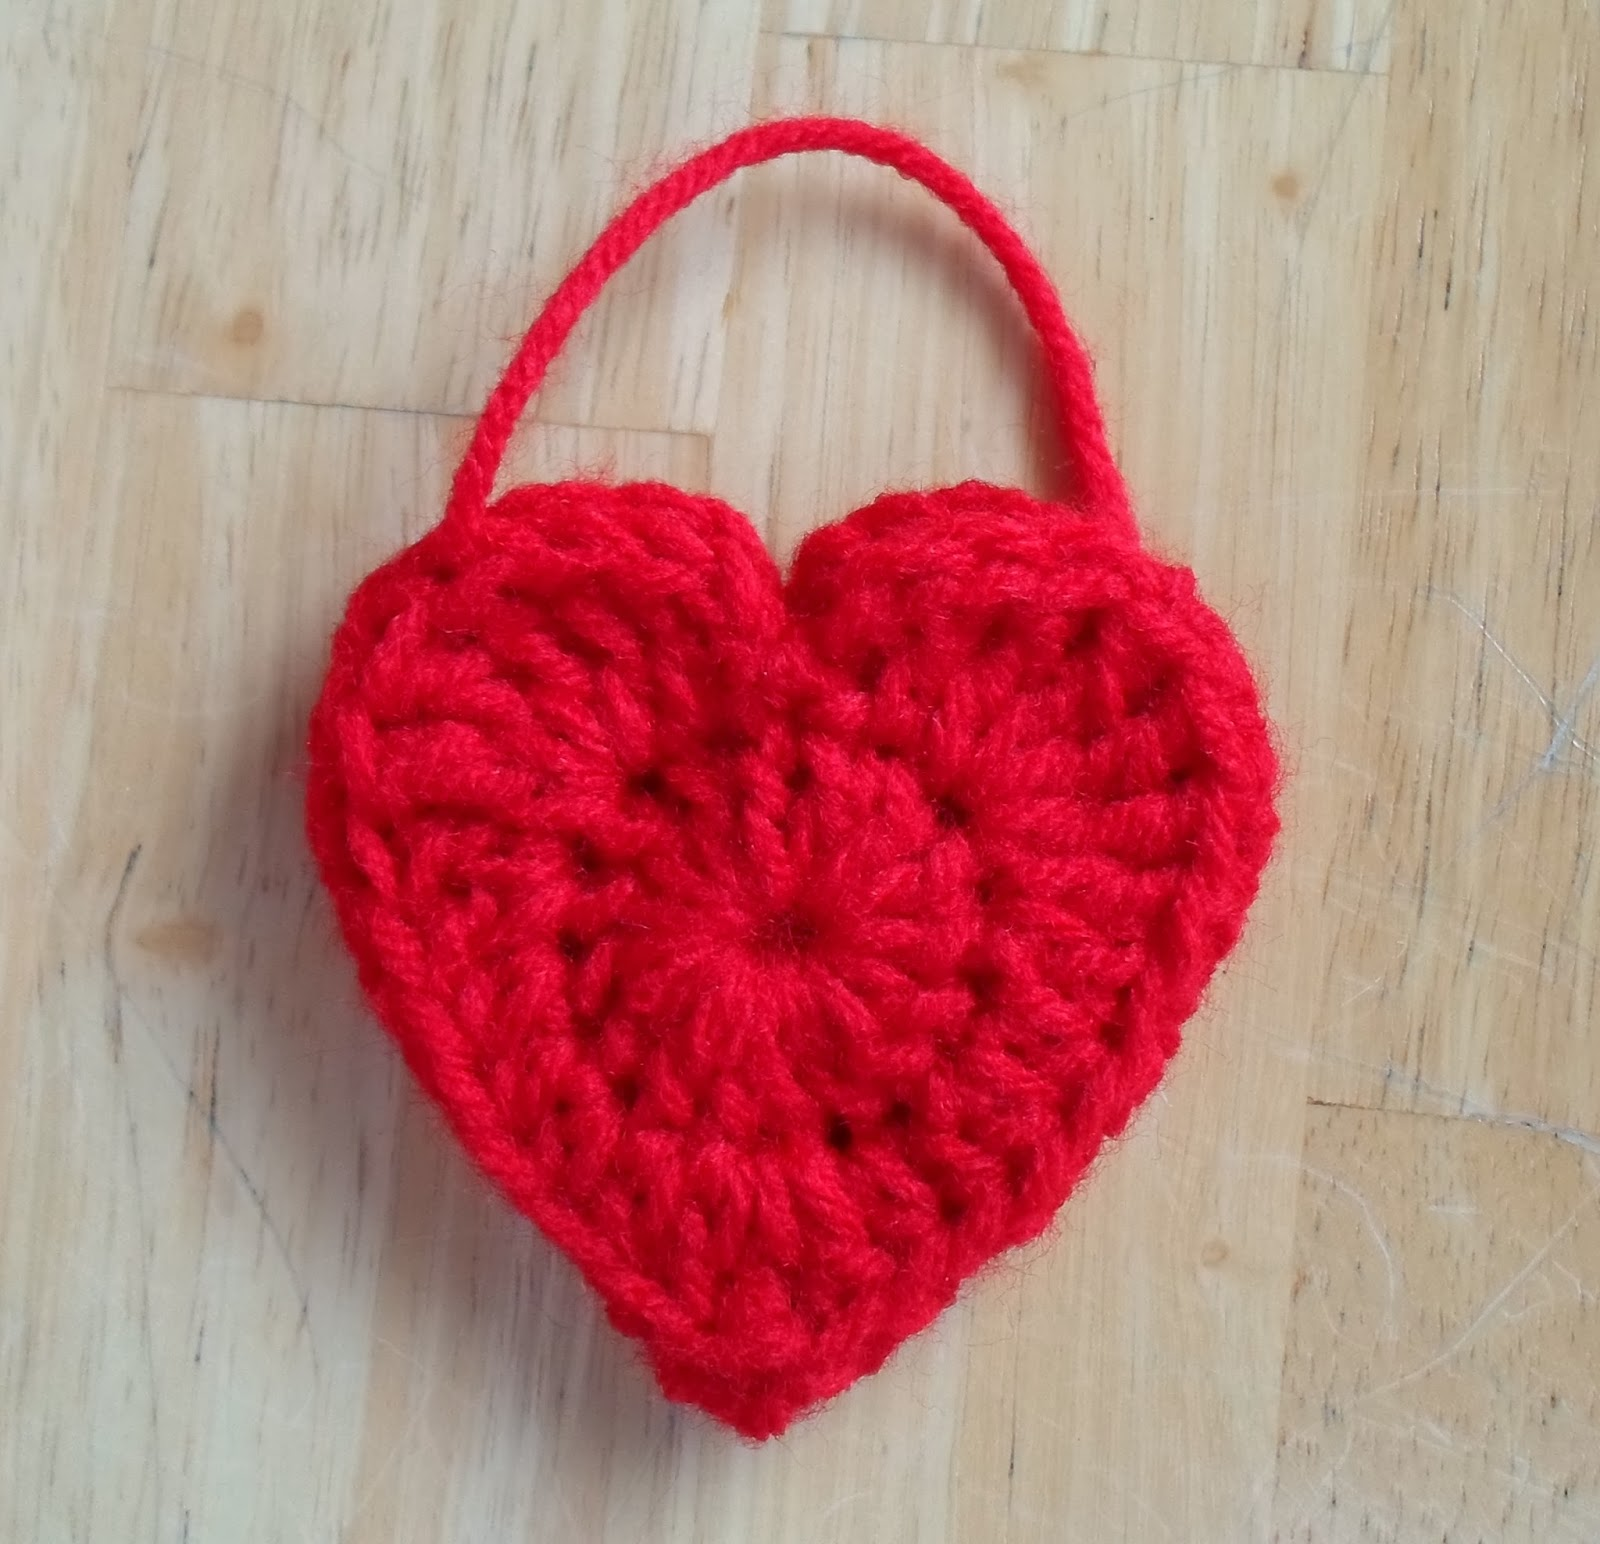 Free crochet pattern heart purse dancox for happier than a pig in mud heart shaped bag or pillow for free crochet pattern bankloansurffo Images